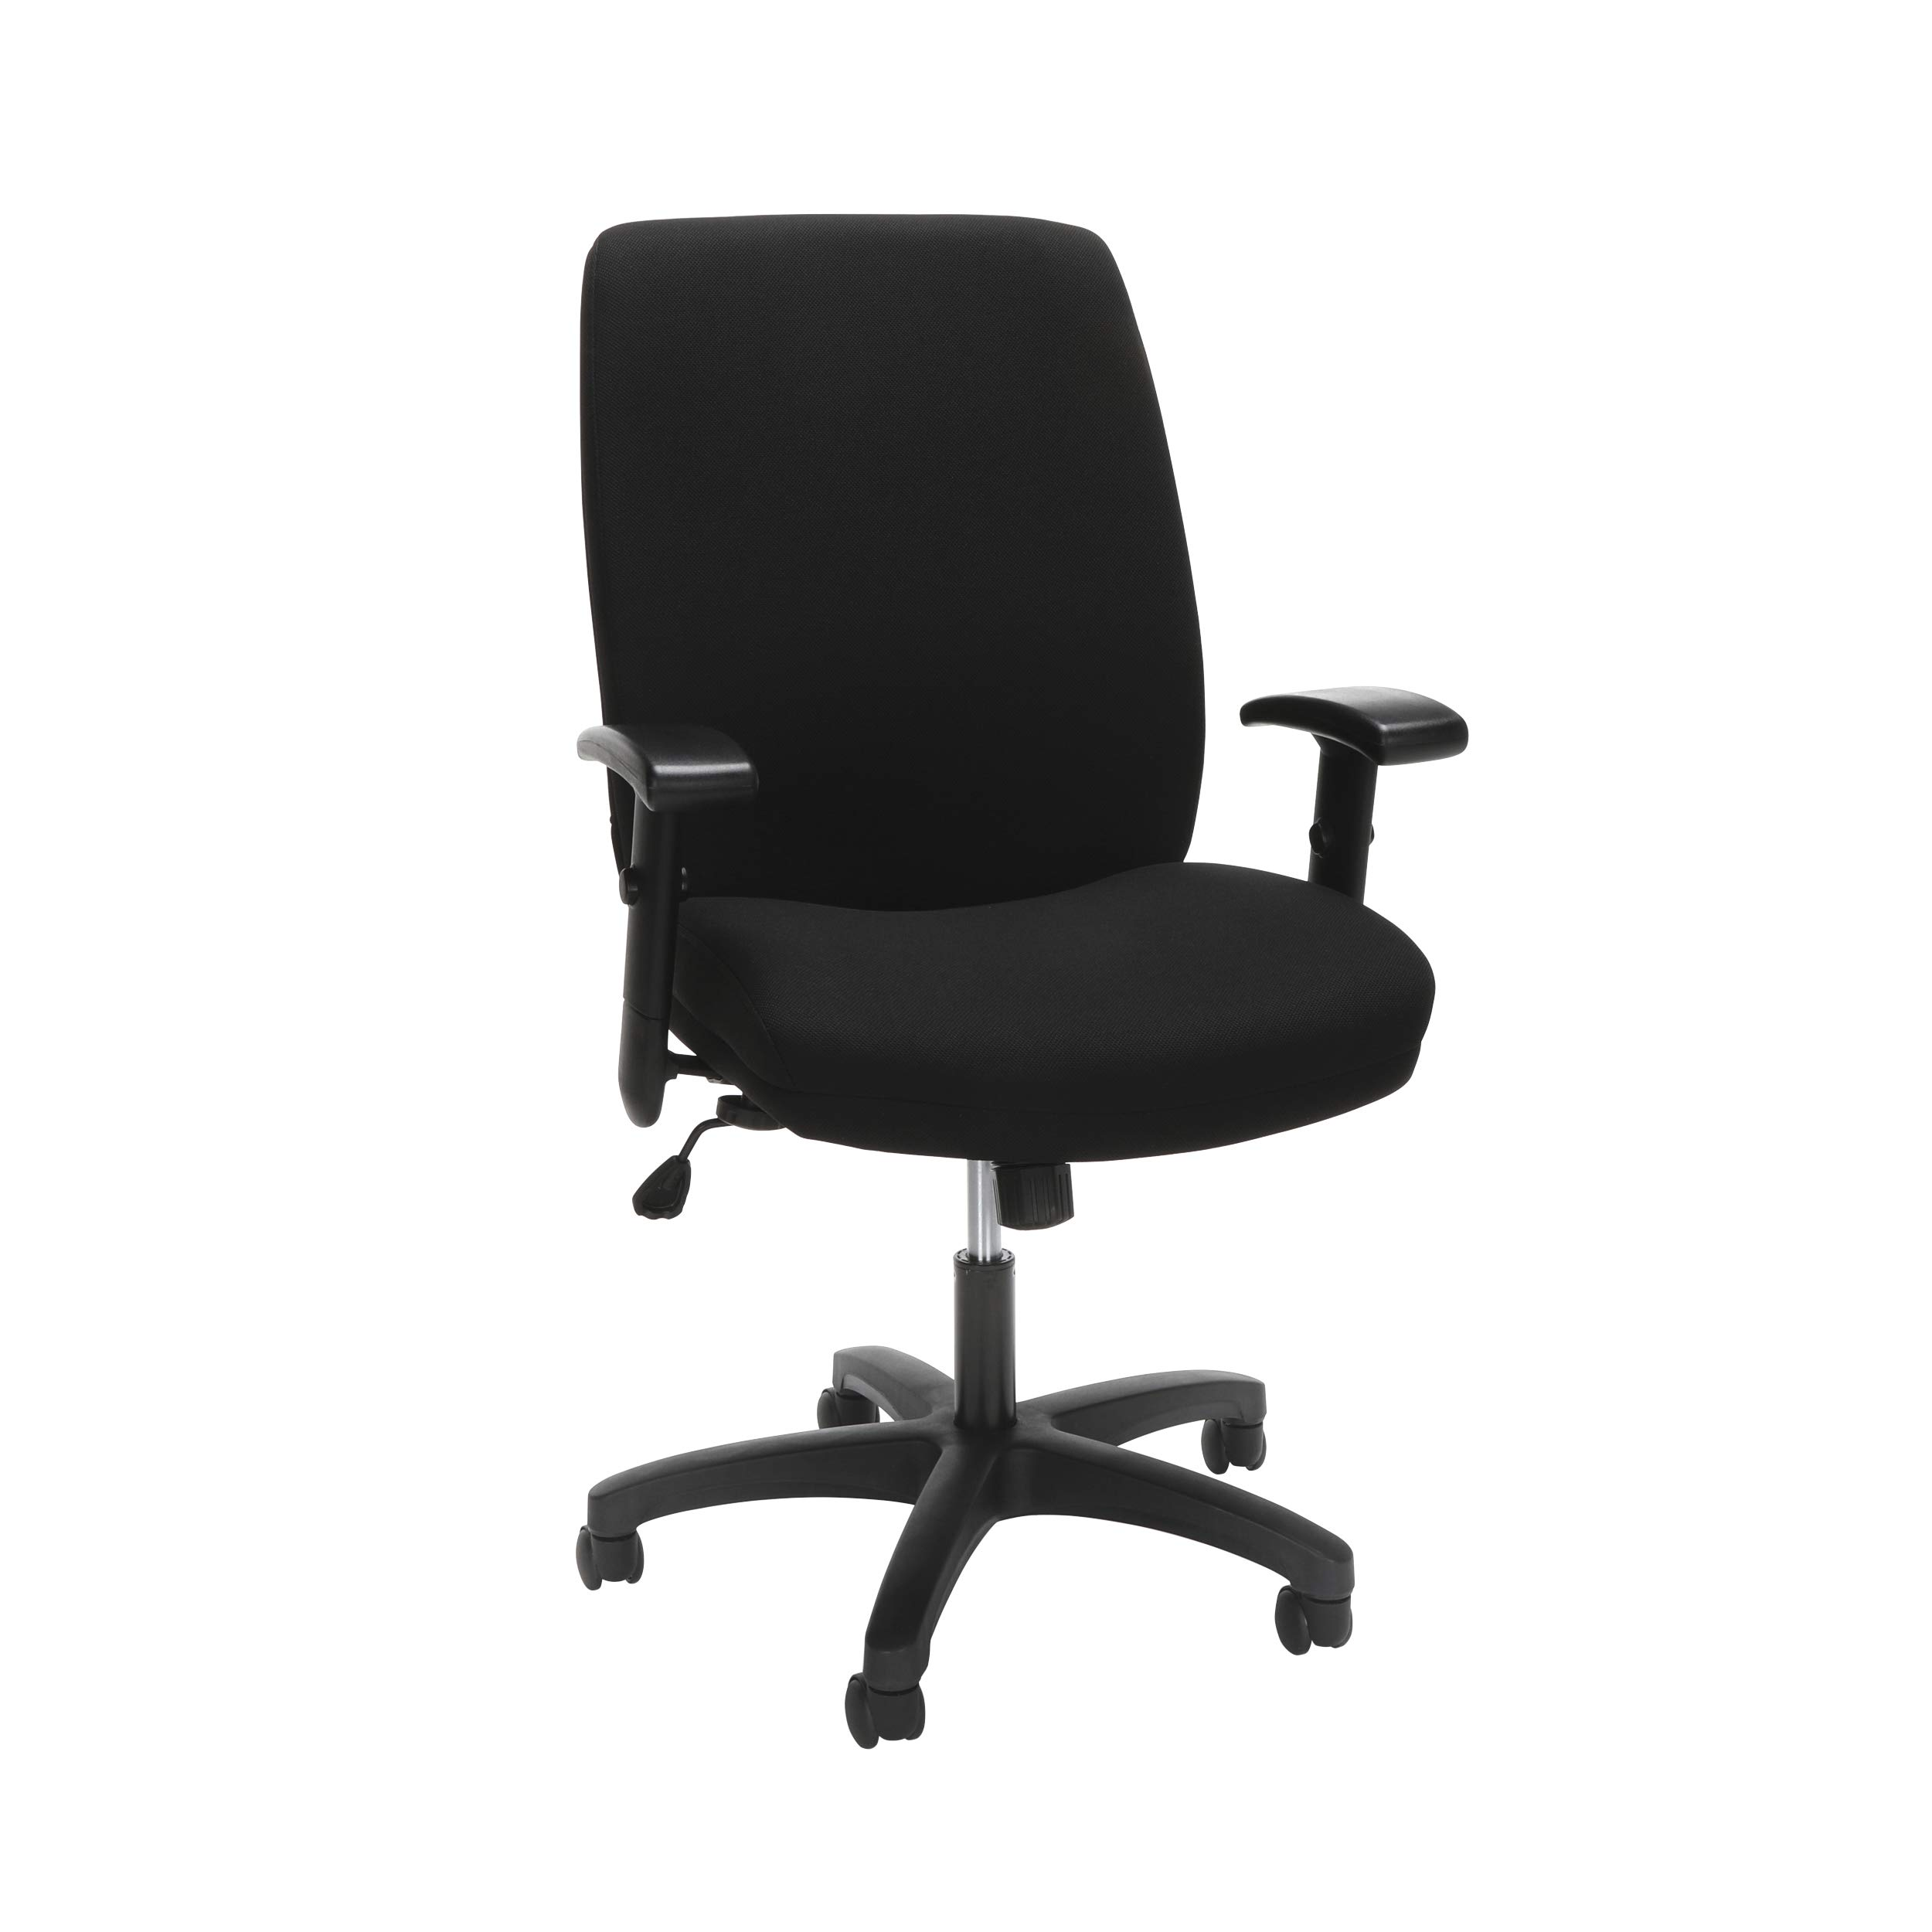 HON The Company HONVL283Y1VA10T Network High-Back Task Chair Featuring Synchro-Tilt Control with Seat Slider, in Black (HVL283),